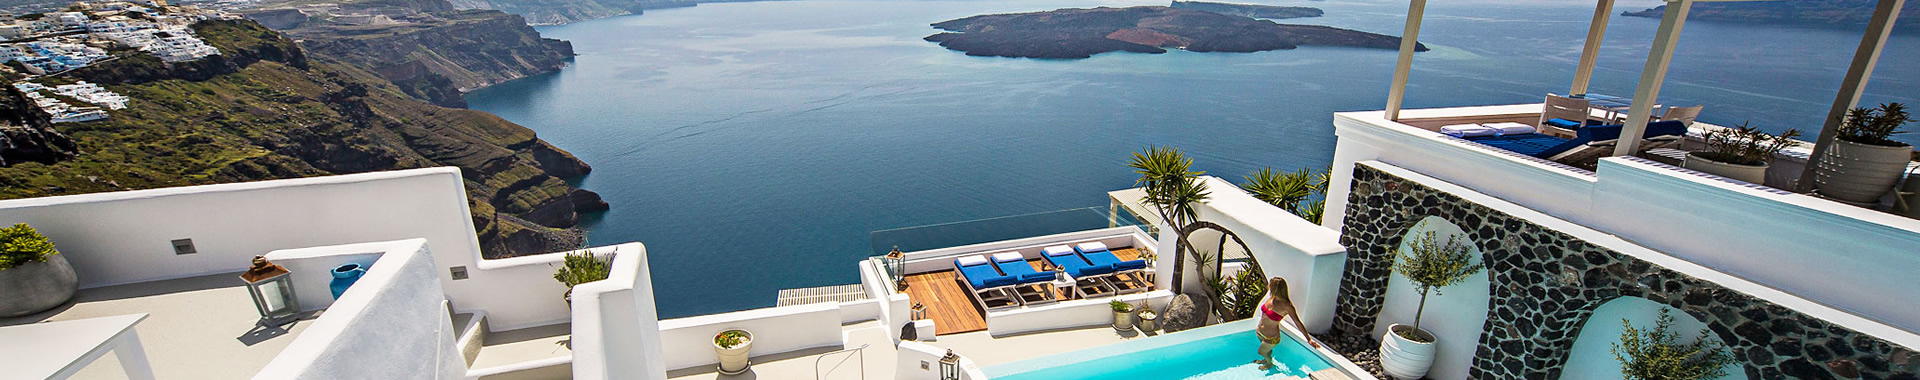 Imerovigli or Perissa Hotels in Santorini island, Greece